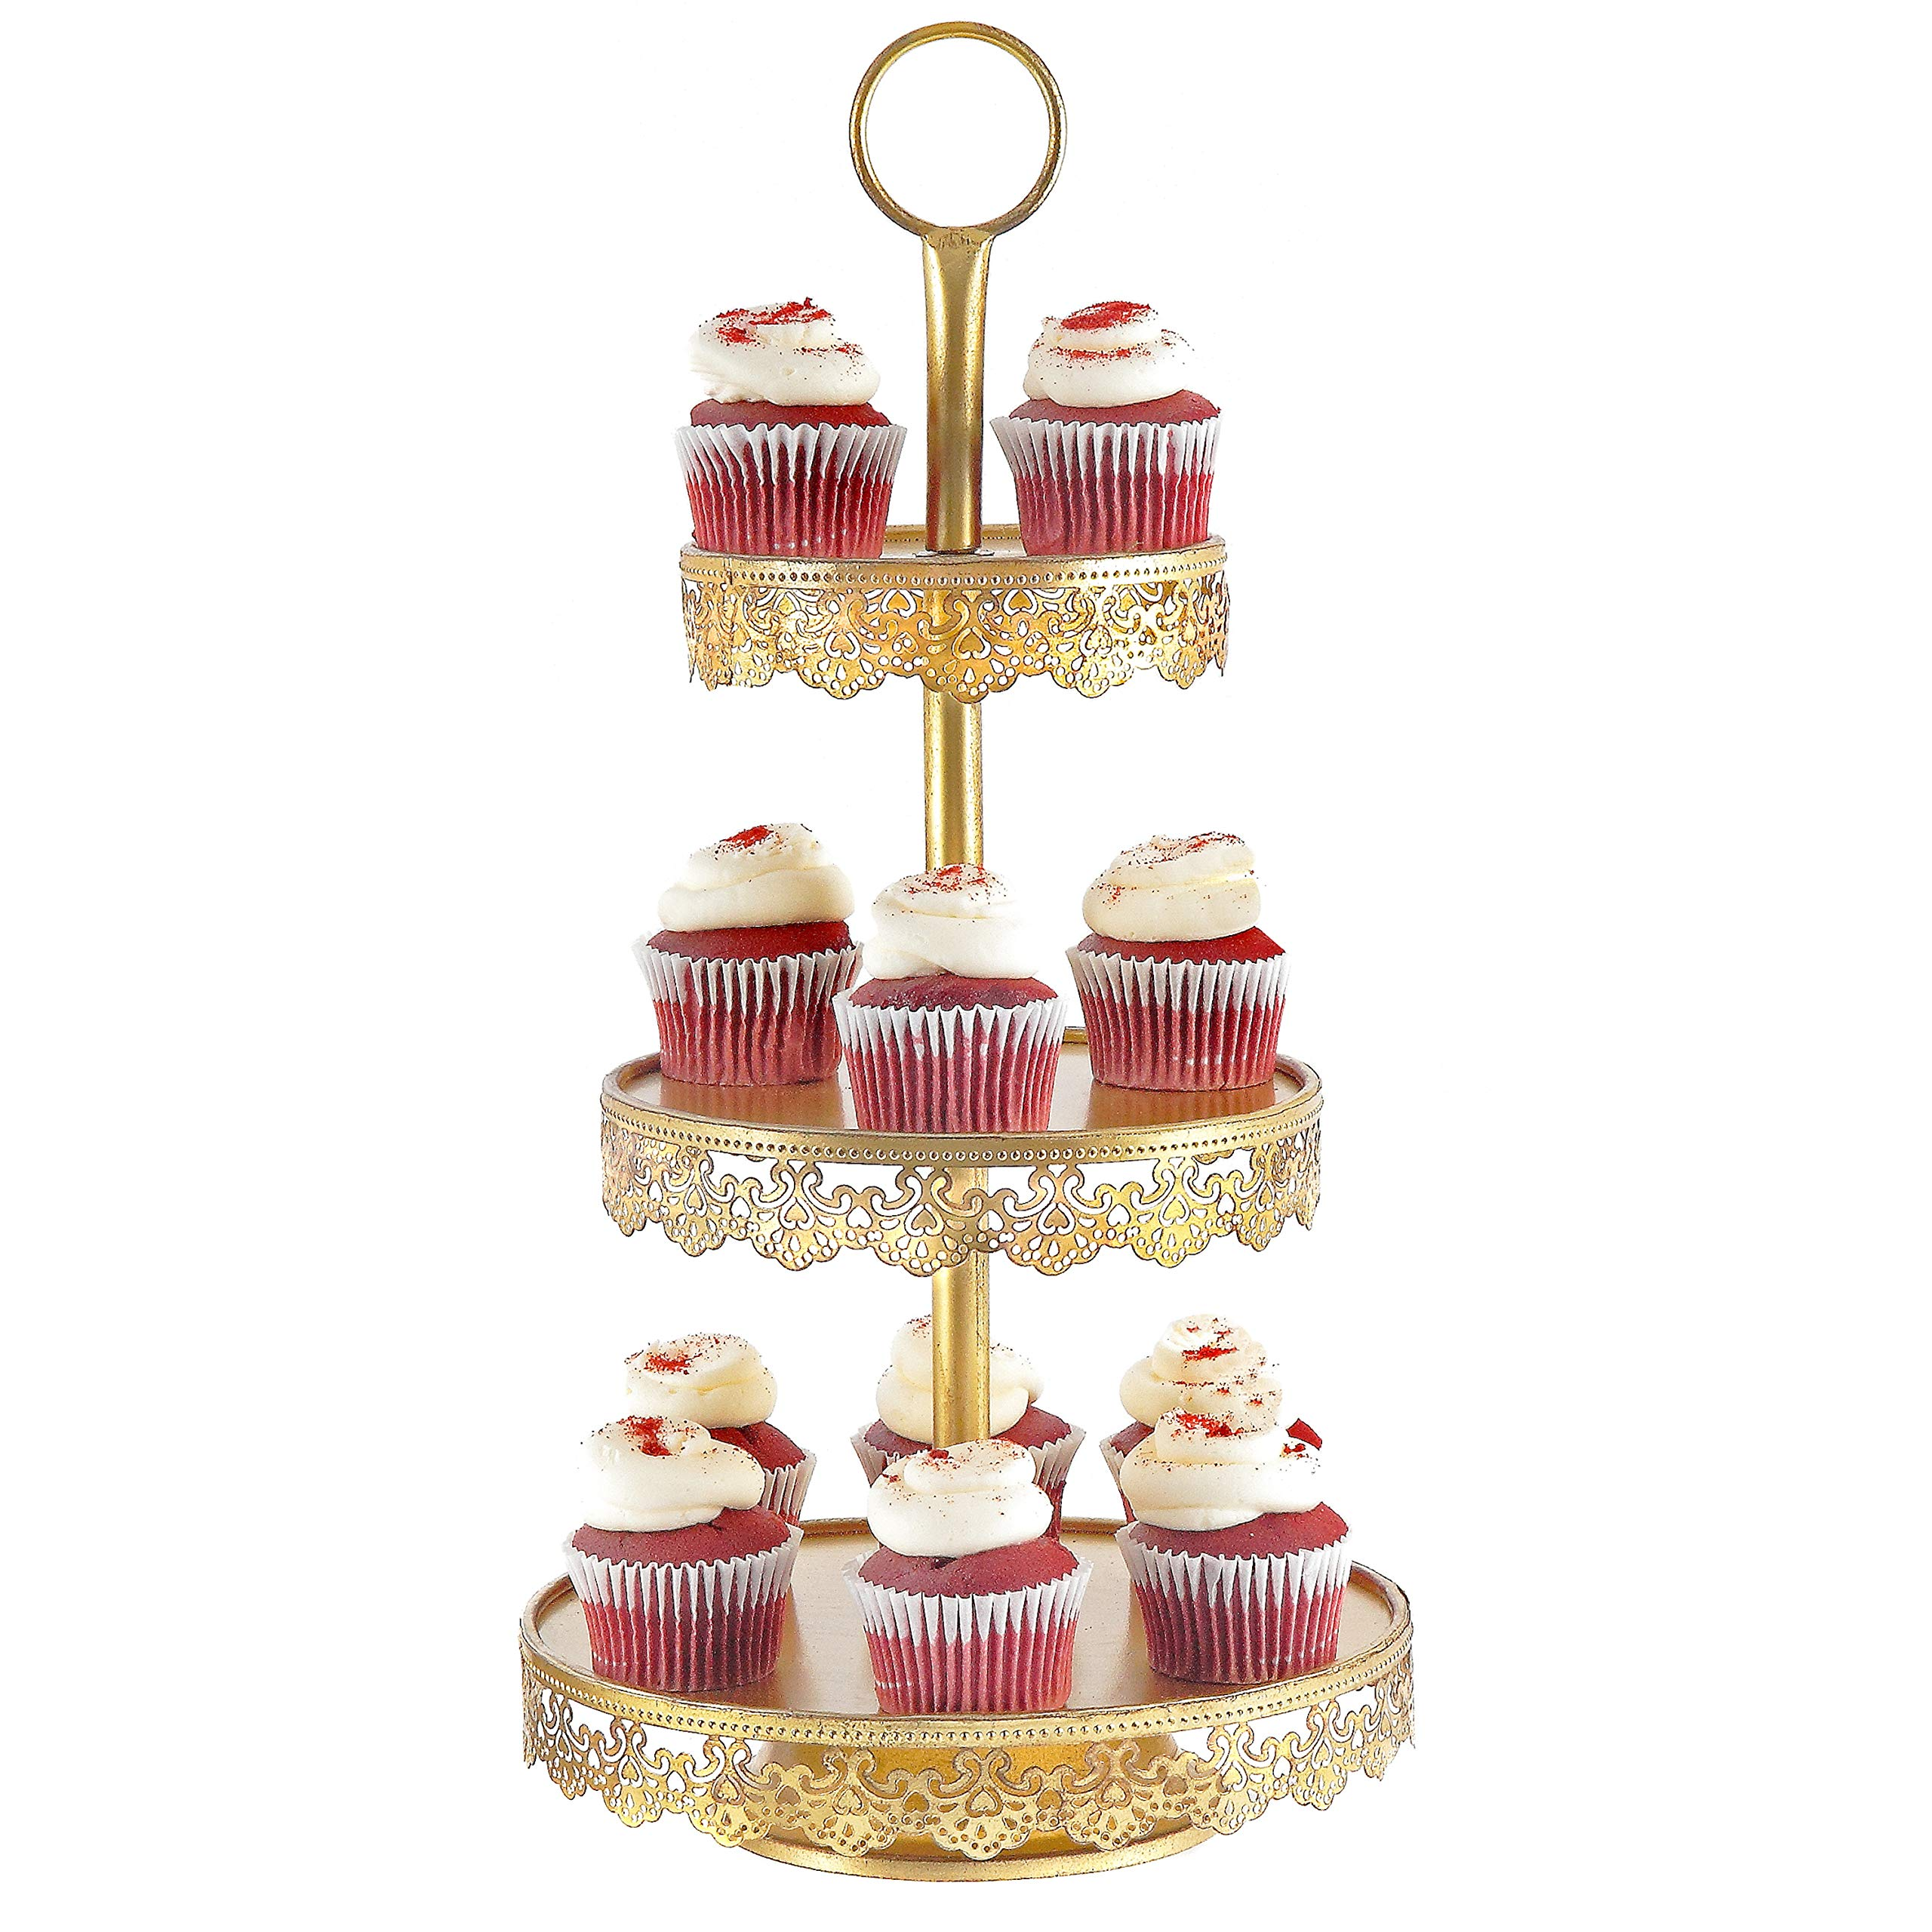 Gold Cupcake Stand-Gold Cake Stand-Dessert Stand-Pastry Stand-3 Tier Serving Tray for Wedding-Strong and Steady Hand-made intricate design